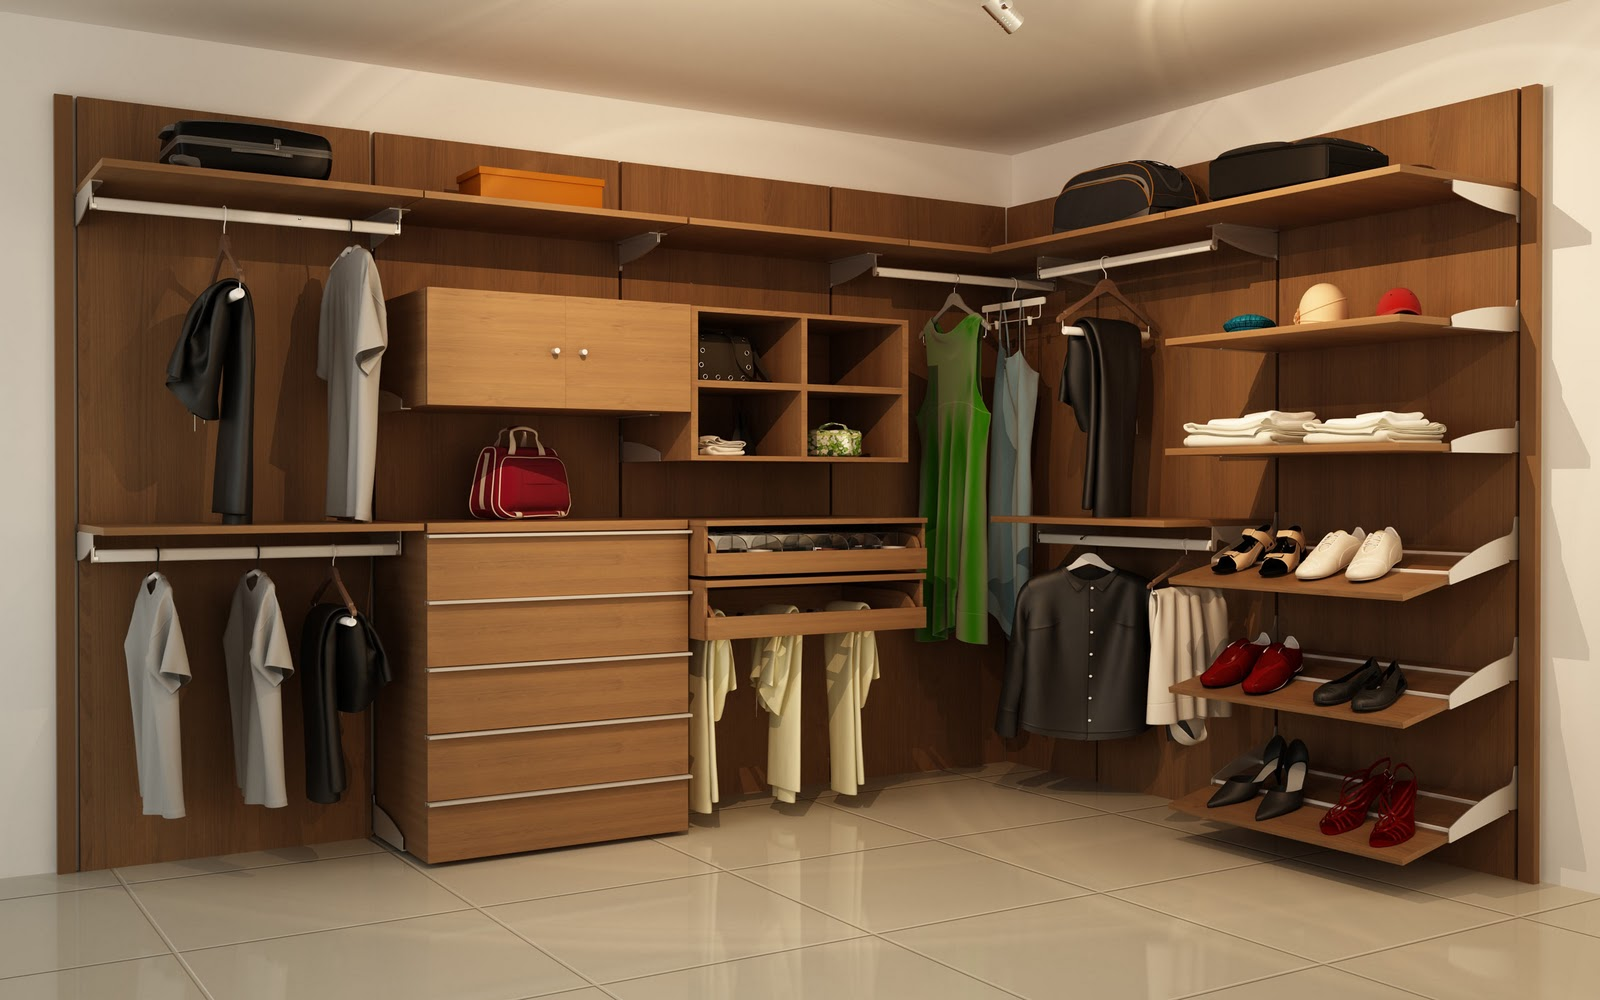 Orbis home closets modulares closets linea trendy for Closet modernos para dormitorios matrimoniales